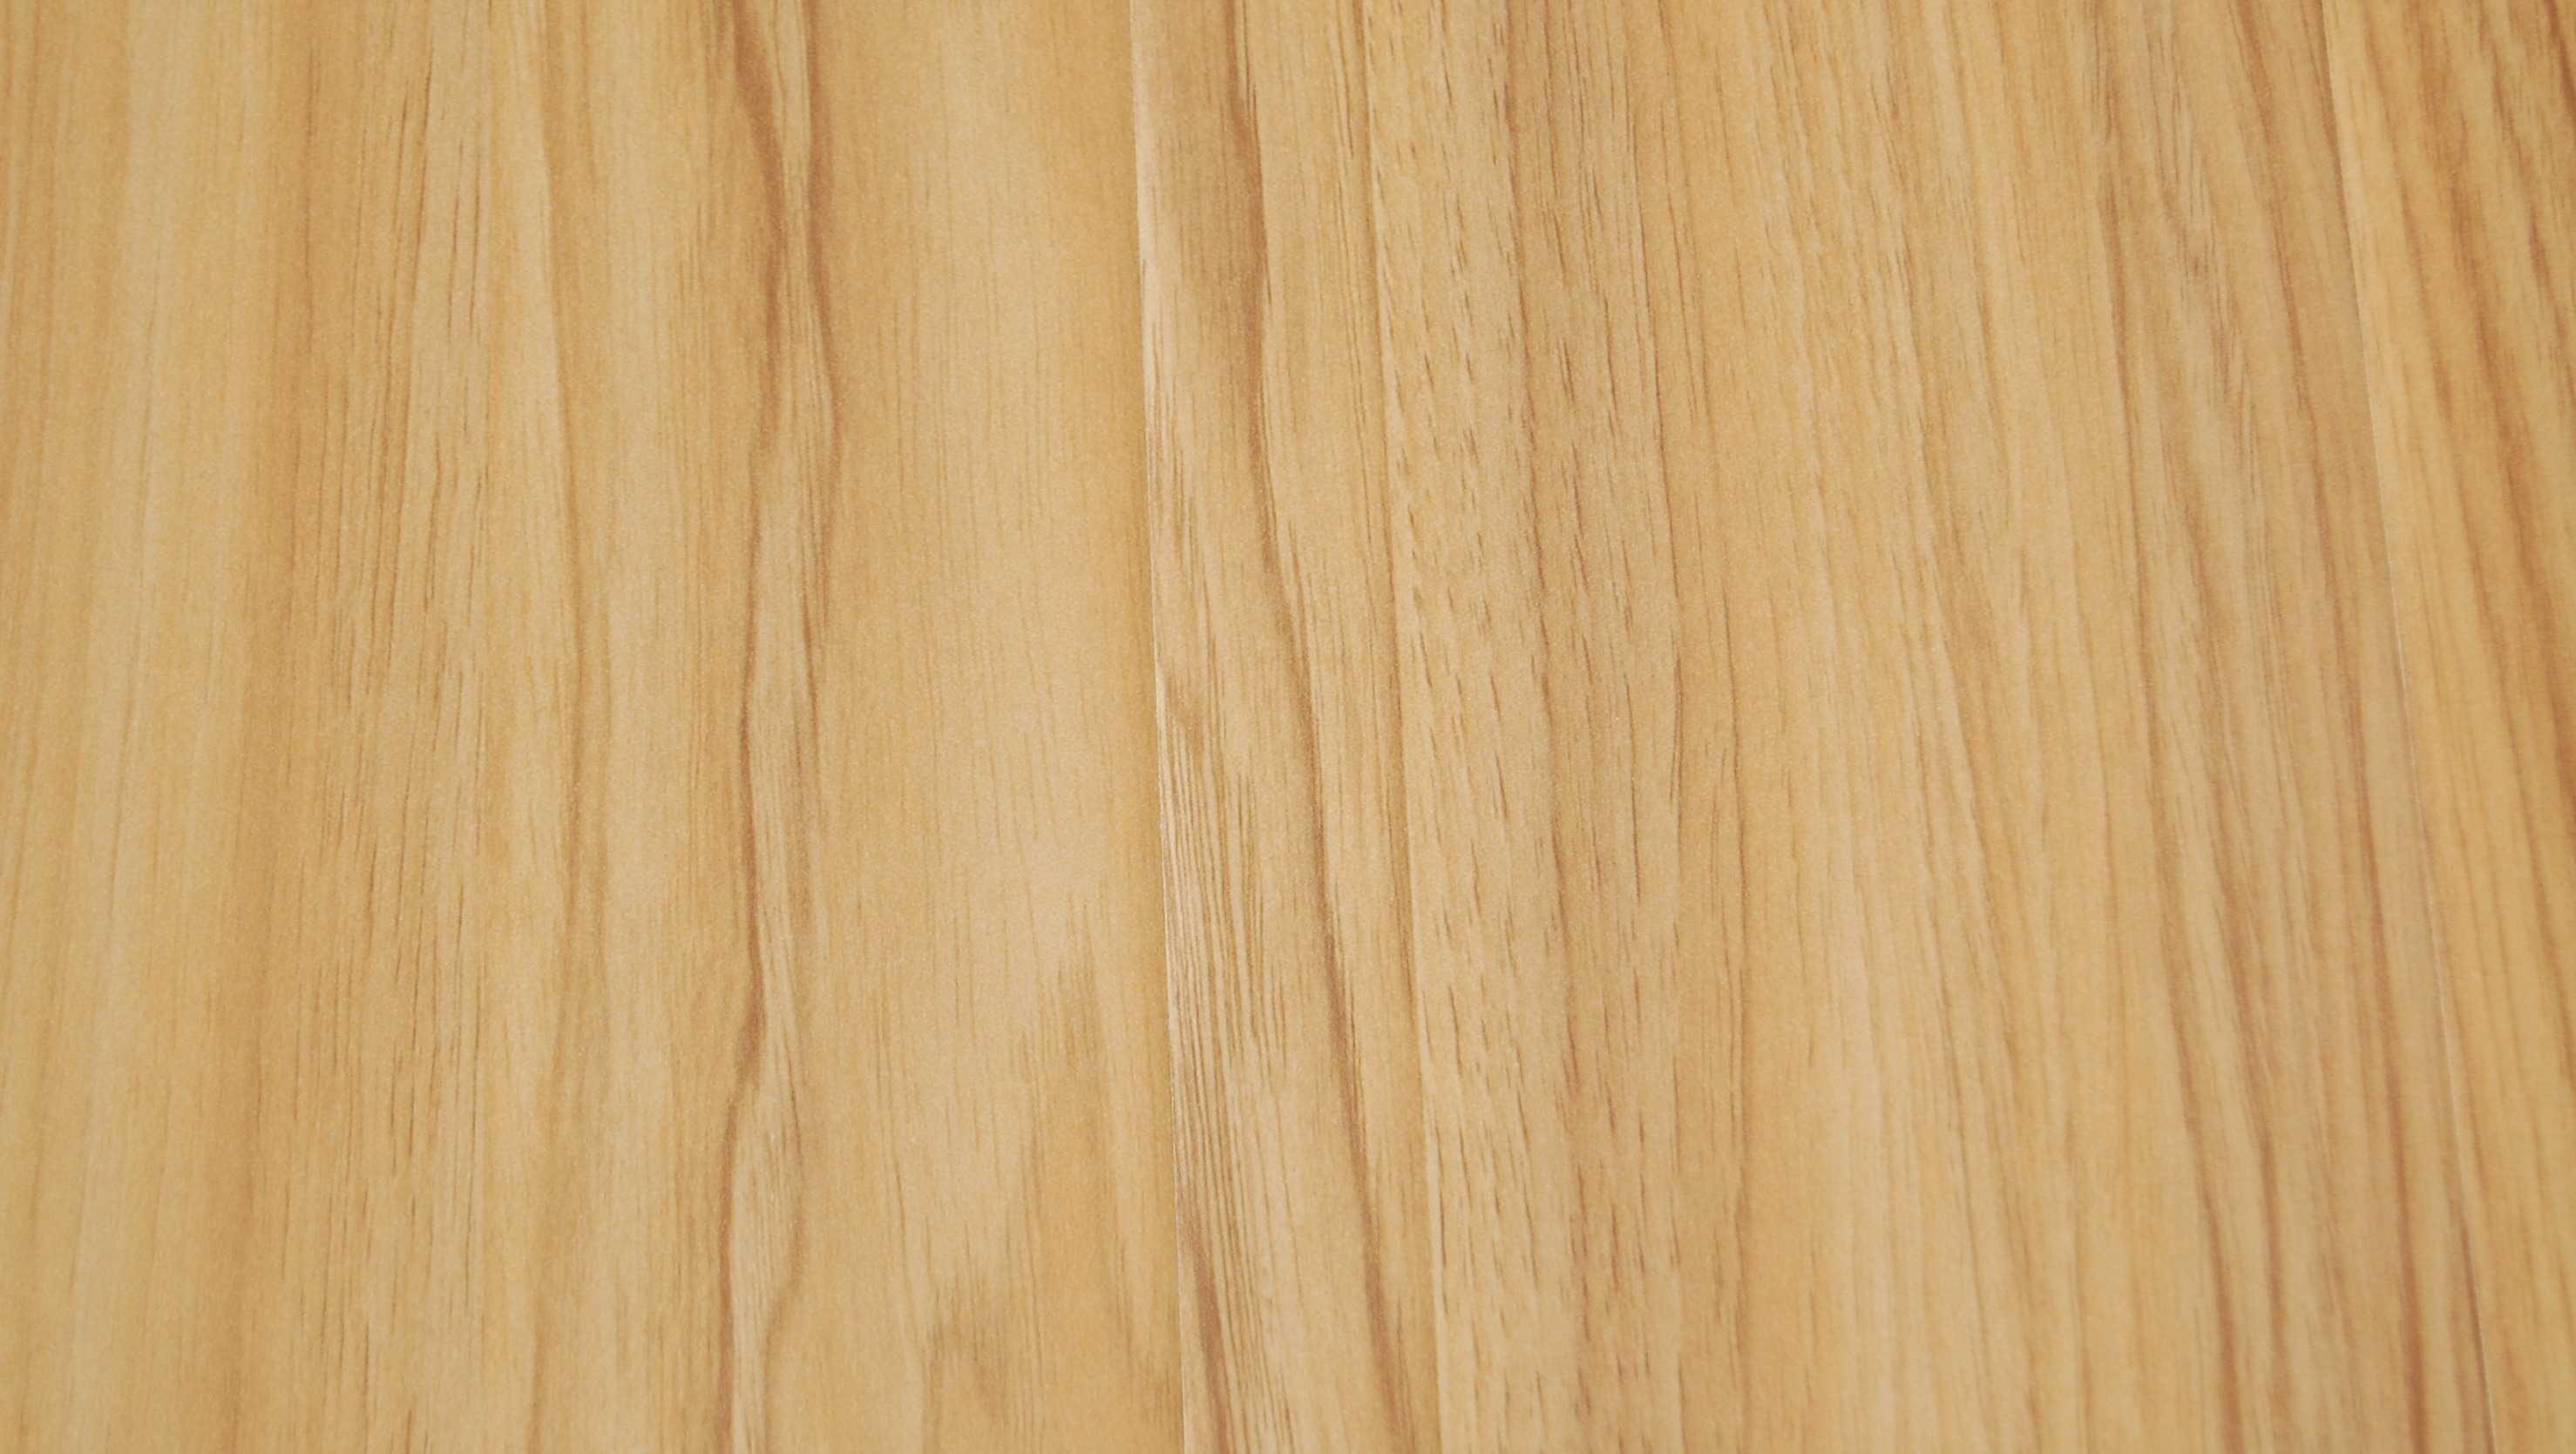 Clean Wood Laminate Floors Without Streaking Home